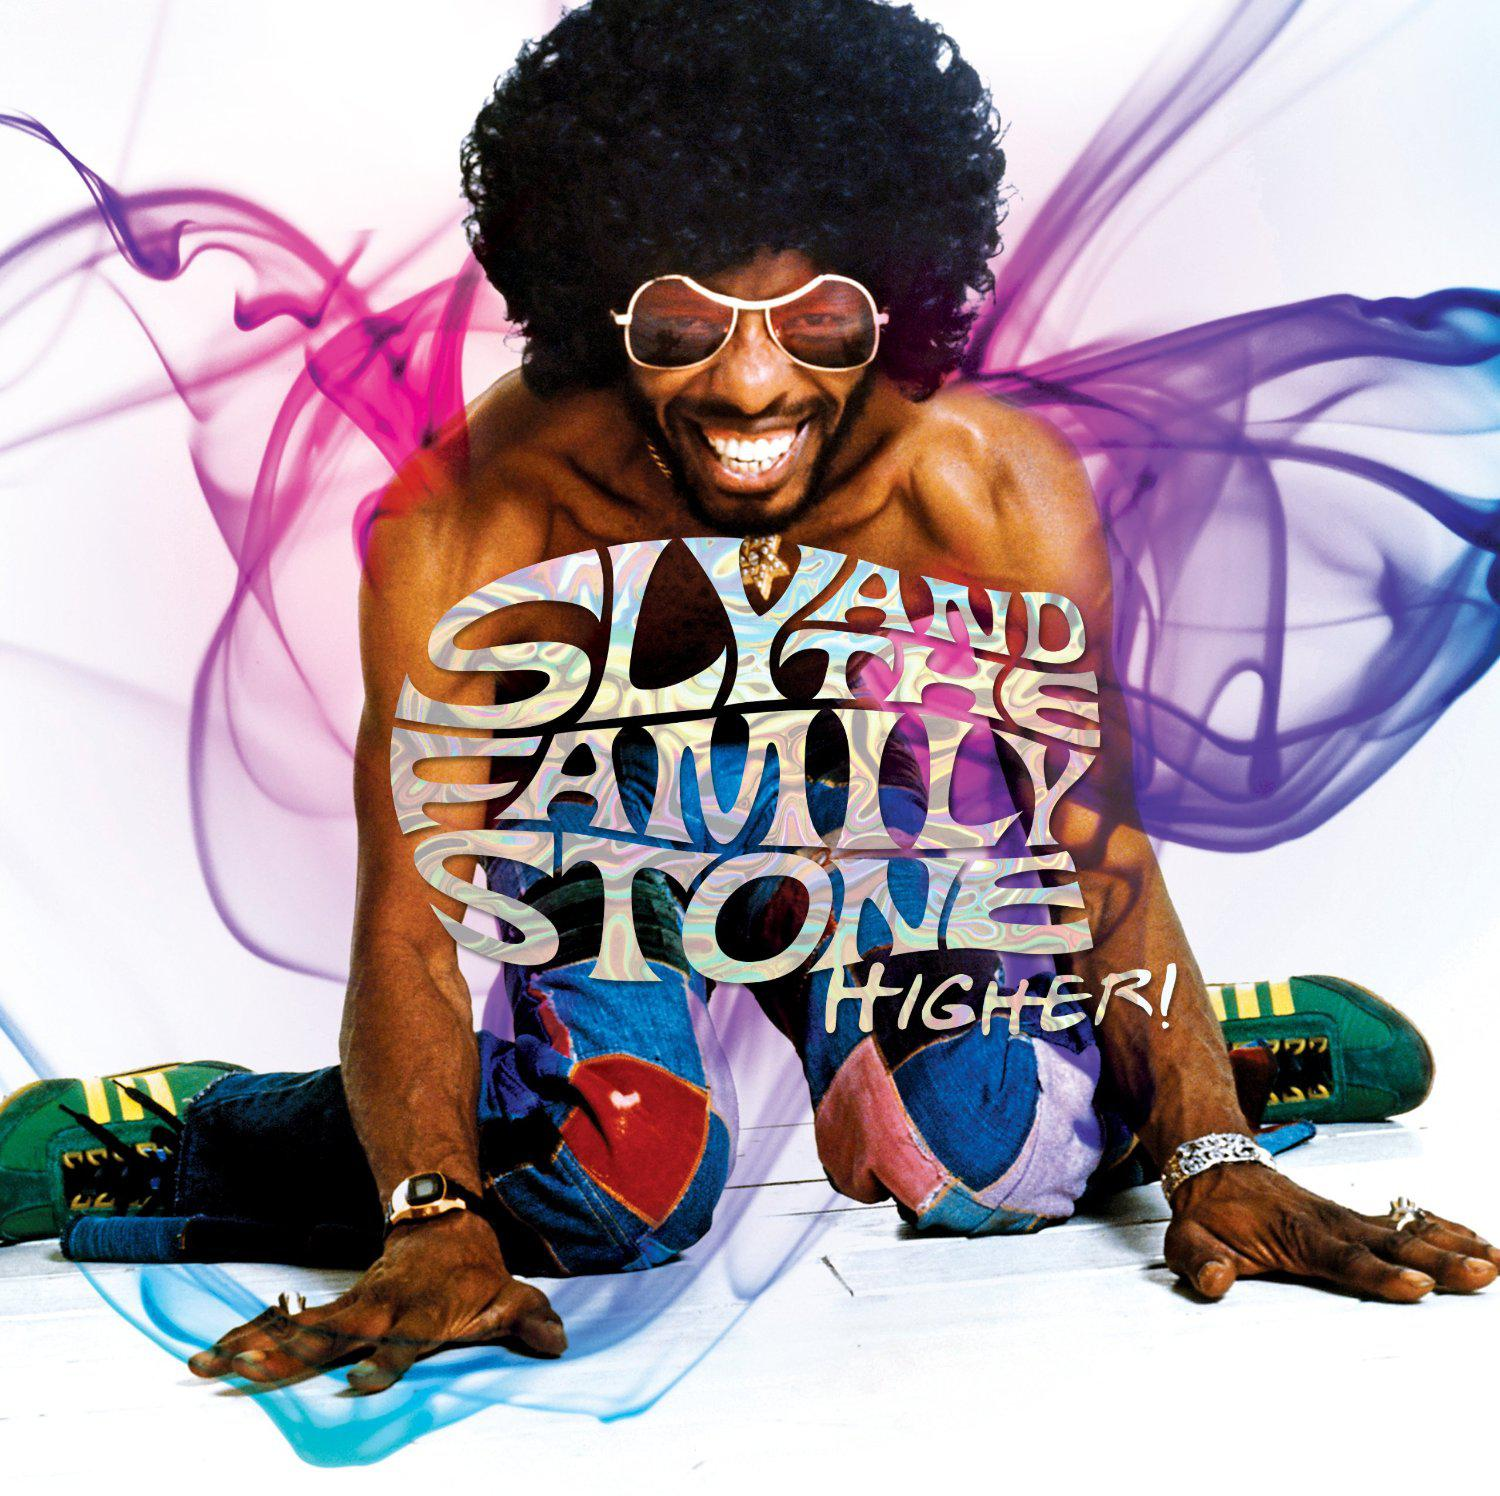 Sly & The Family Stone – Higher!